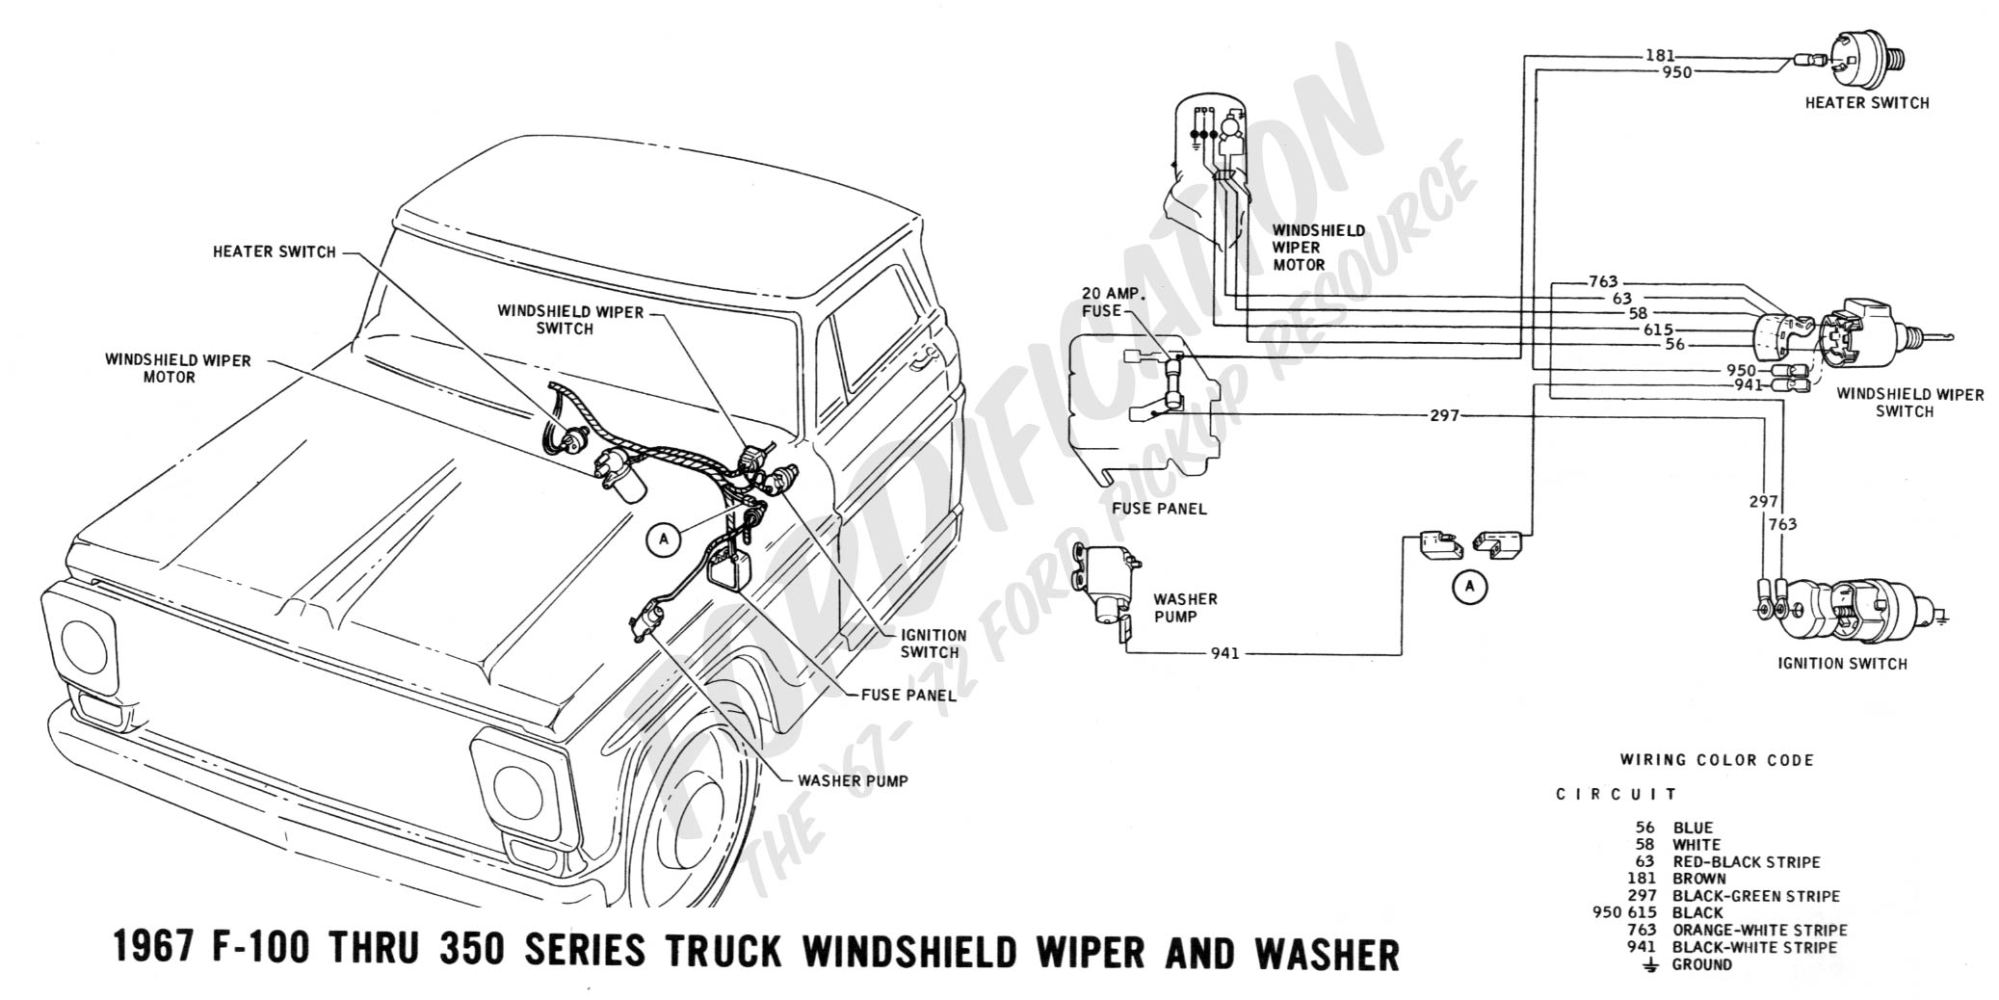 hight resolution of 1967 f 100 thru f 350 windshield wiper and washer ford truck technical drawings and schematics